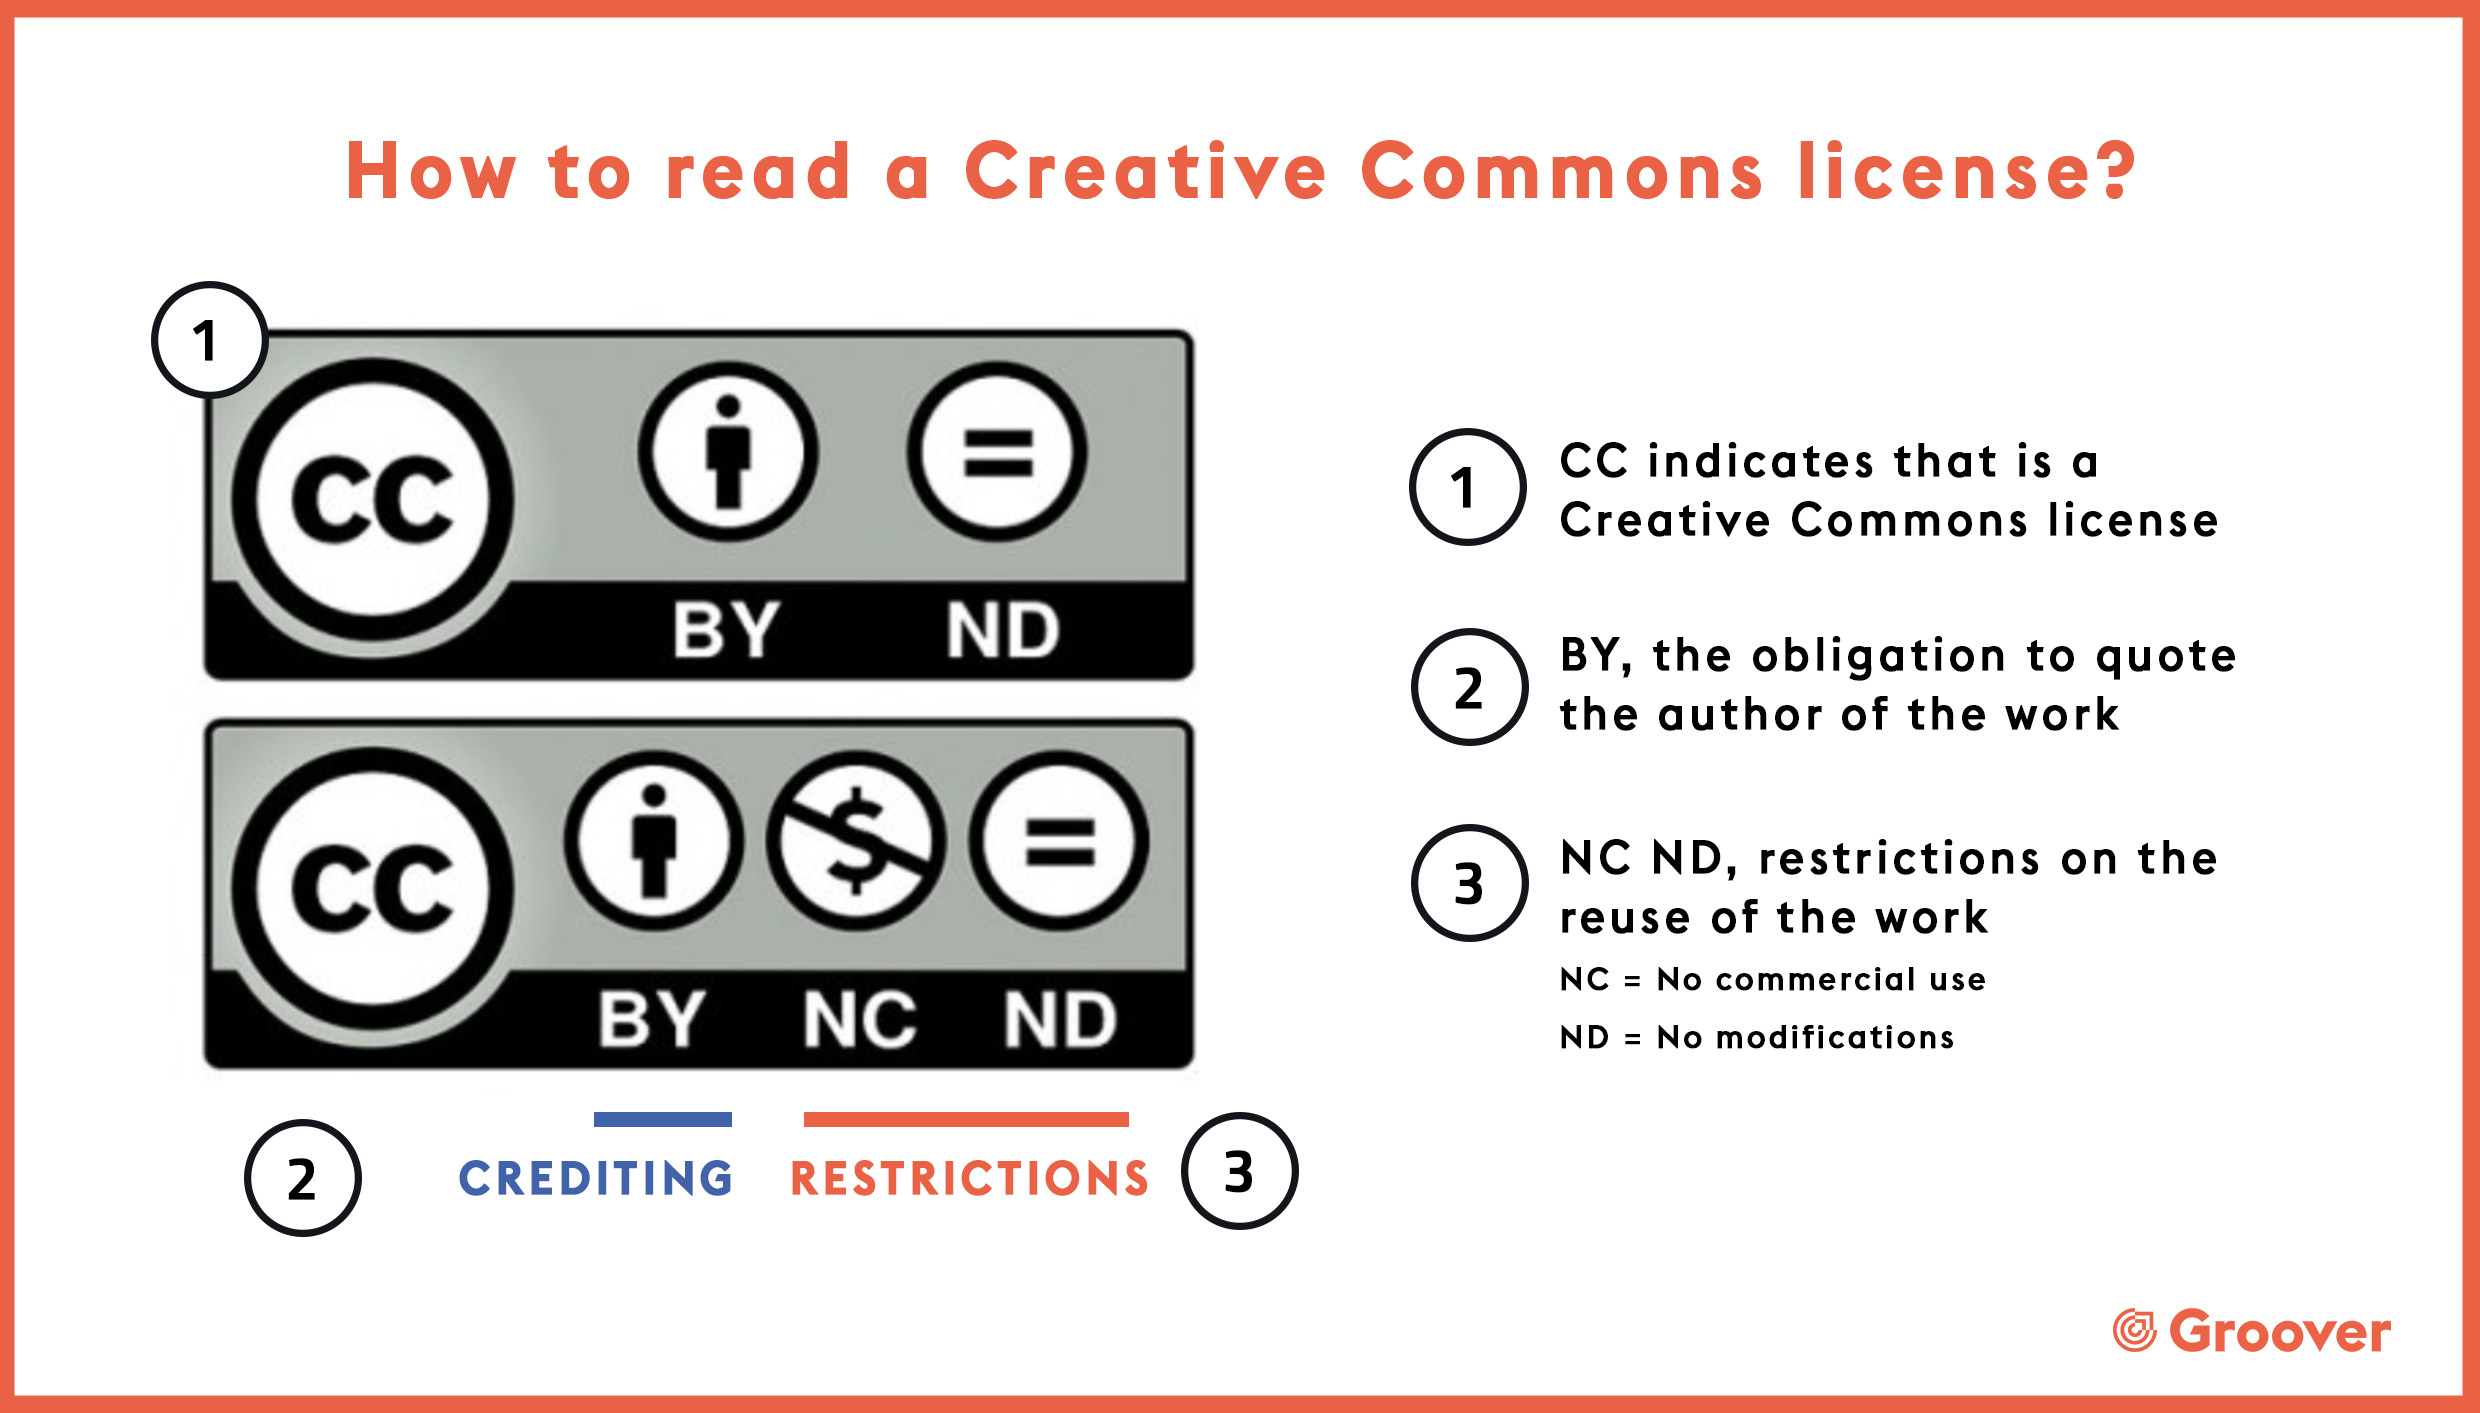 How to read a creative Commons license